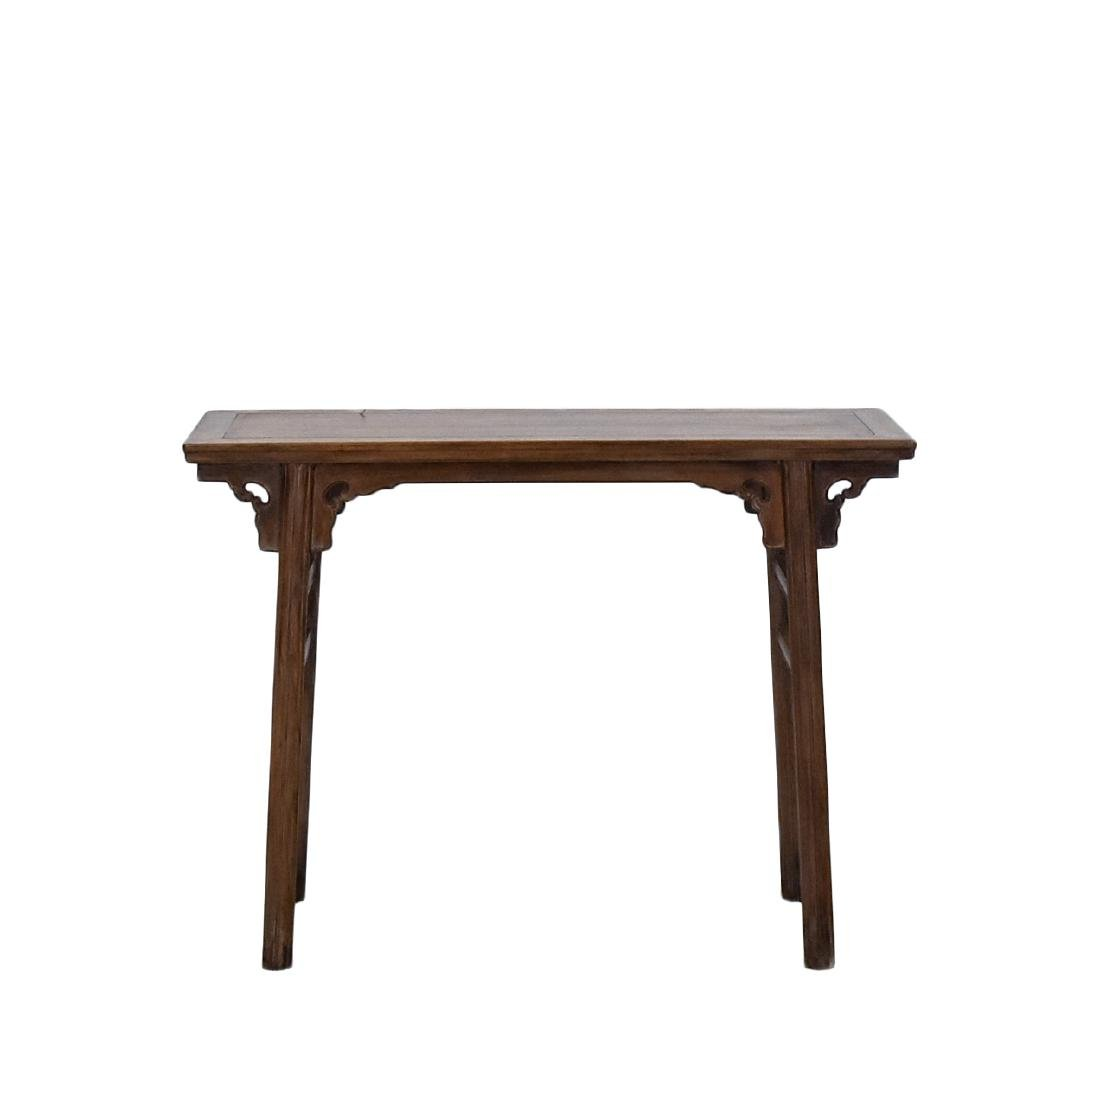 18TH C CHINESE HUANGHUALI ALTAR TABLE